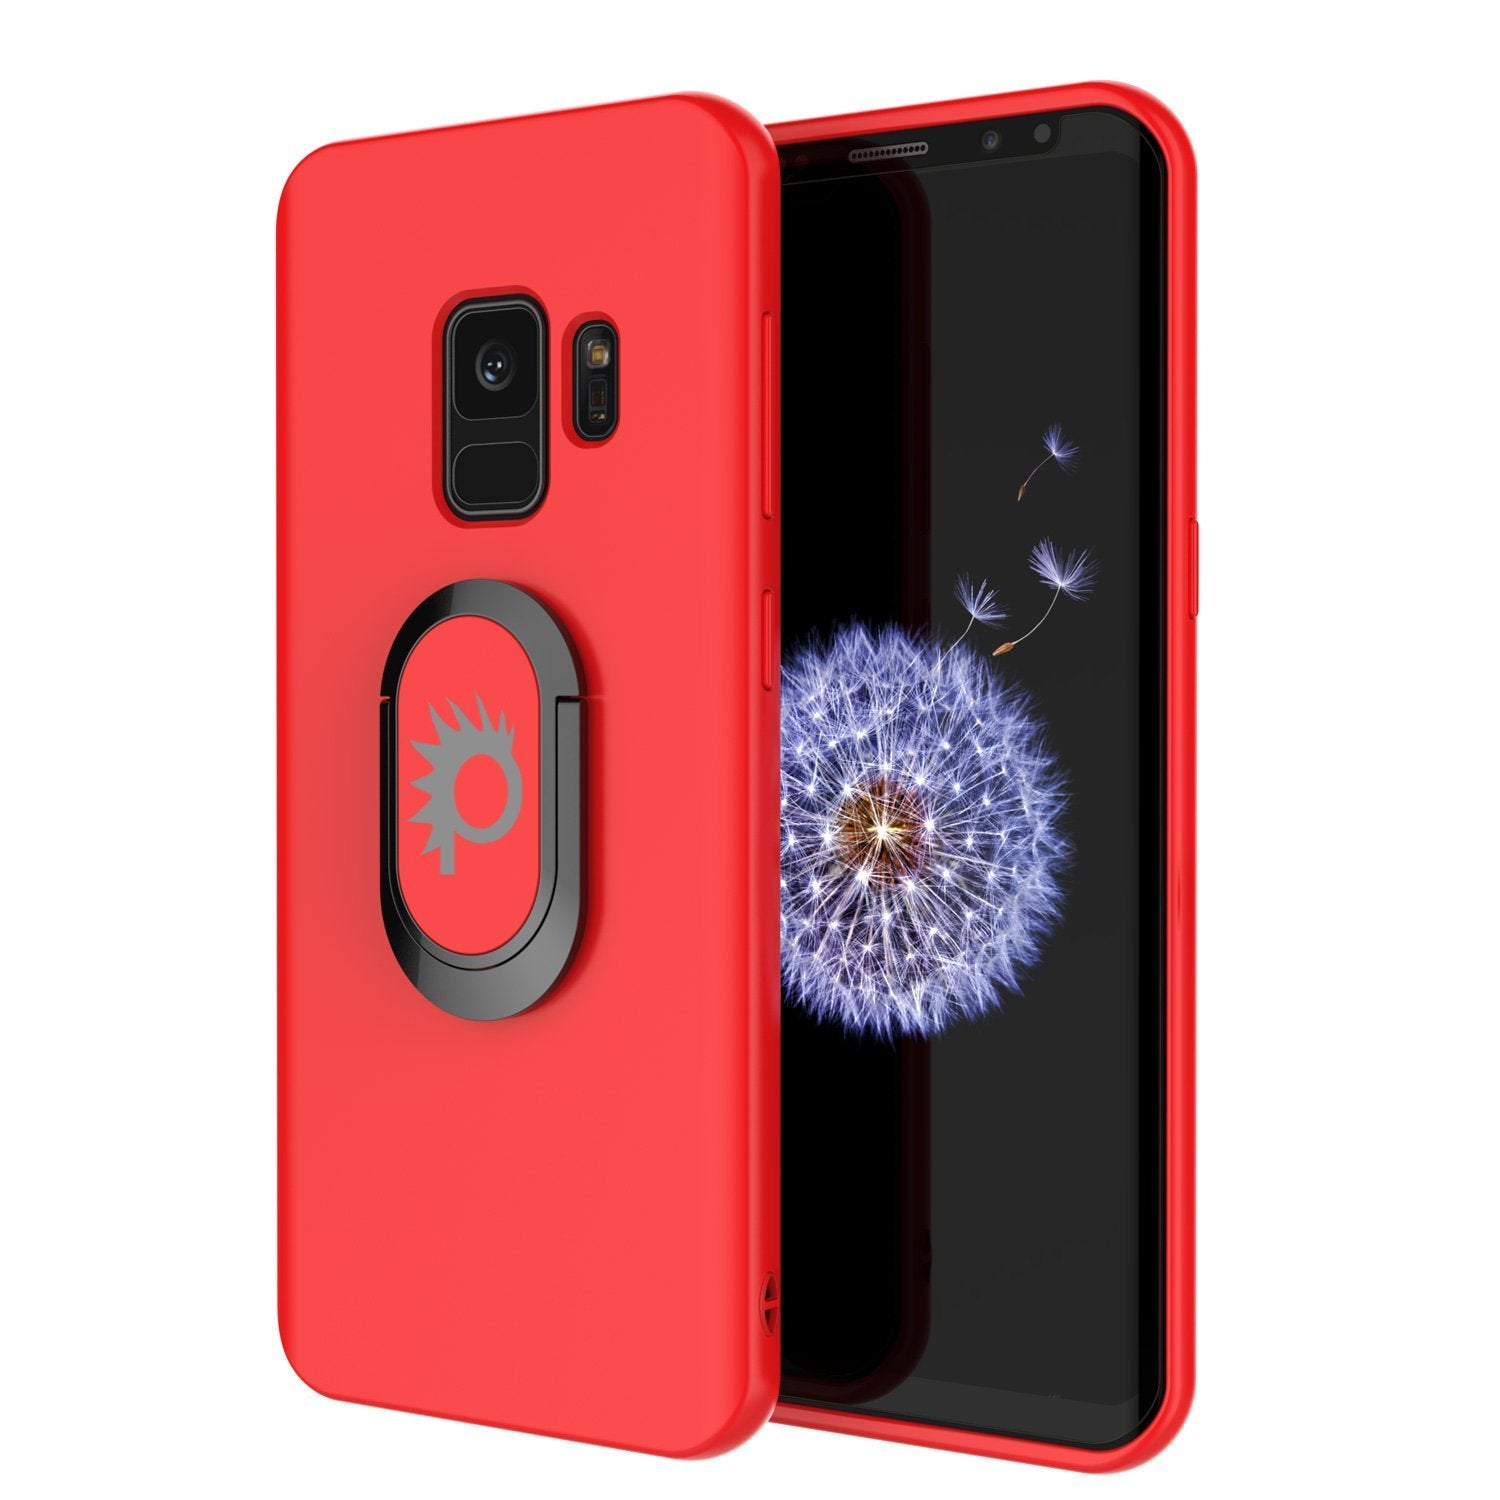 Galaxy S9 Case, Punkcase Magnetix Protective TPU Cover W/ Kickstand, Sceen Protector[Red]